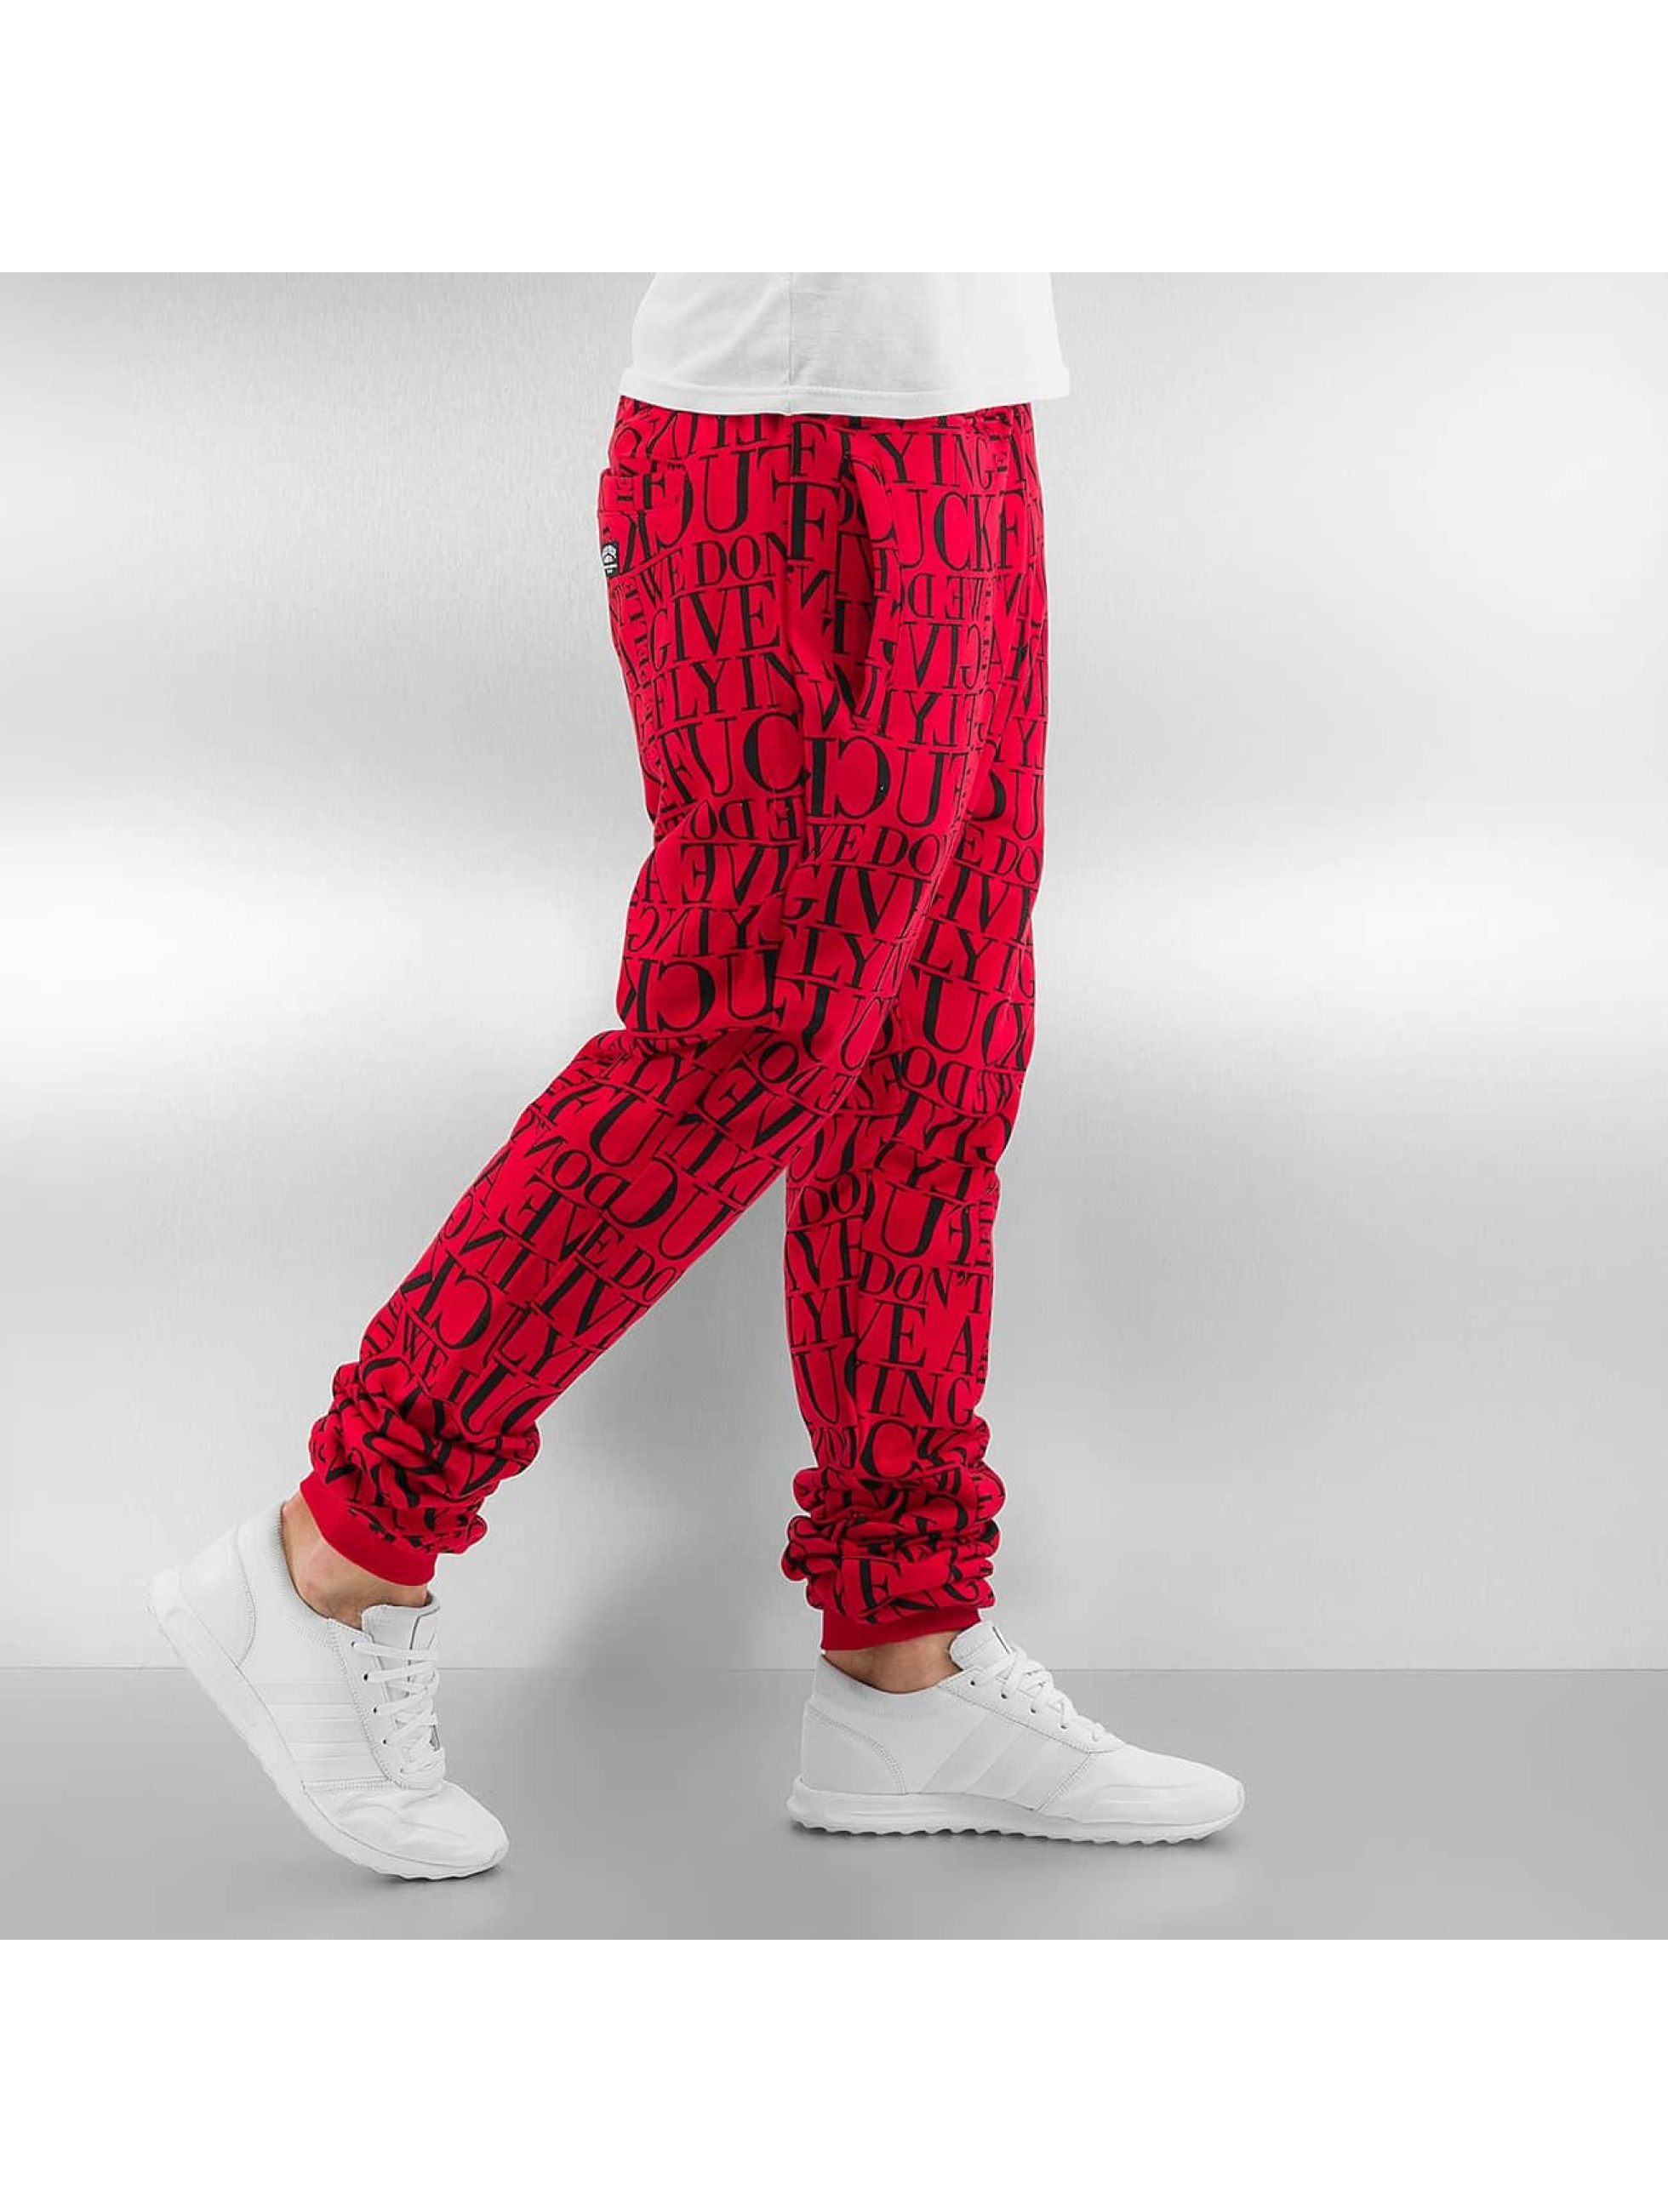 Pelle Pelle Sweat Pant We Don't Give A * red